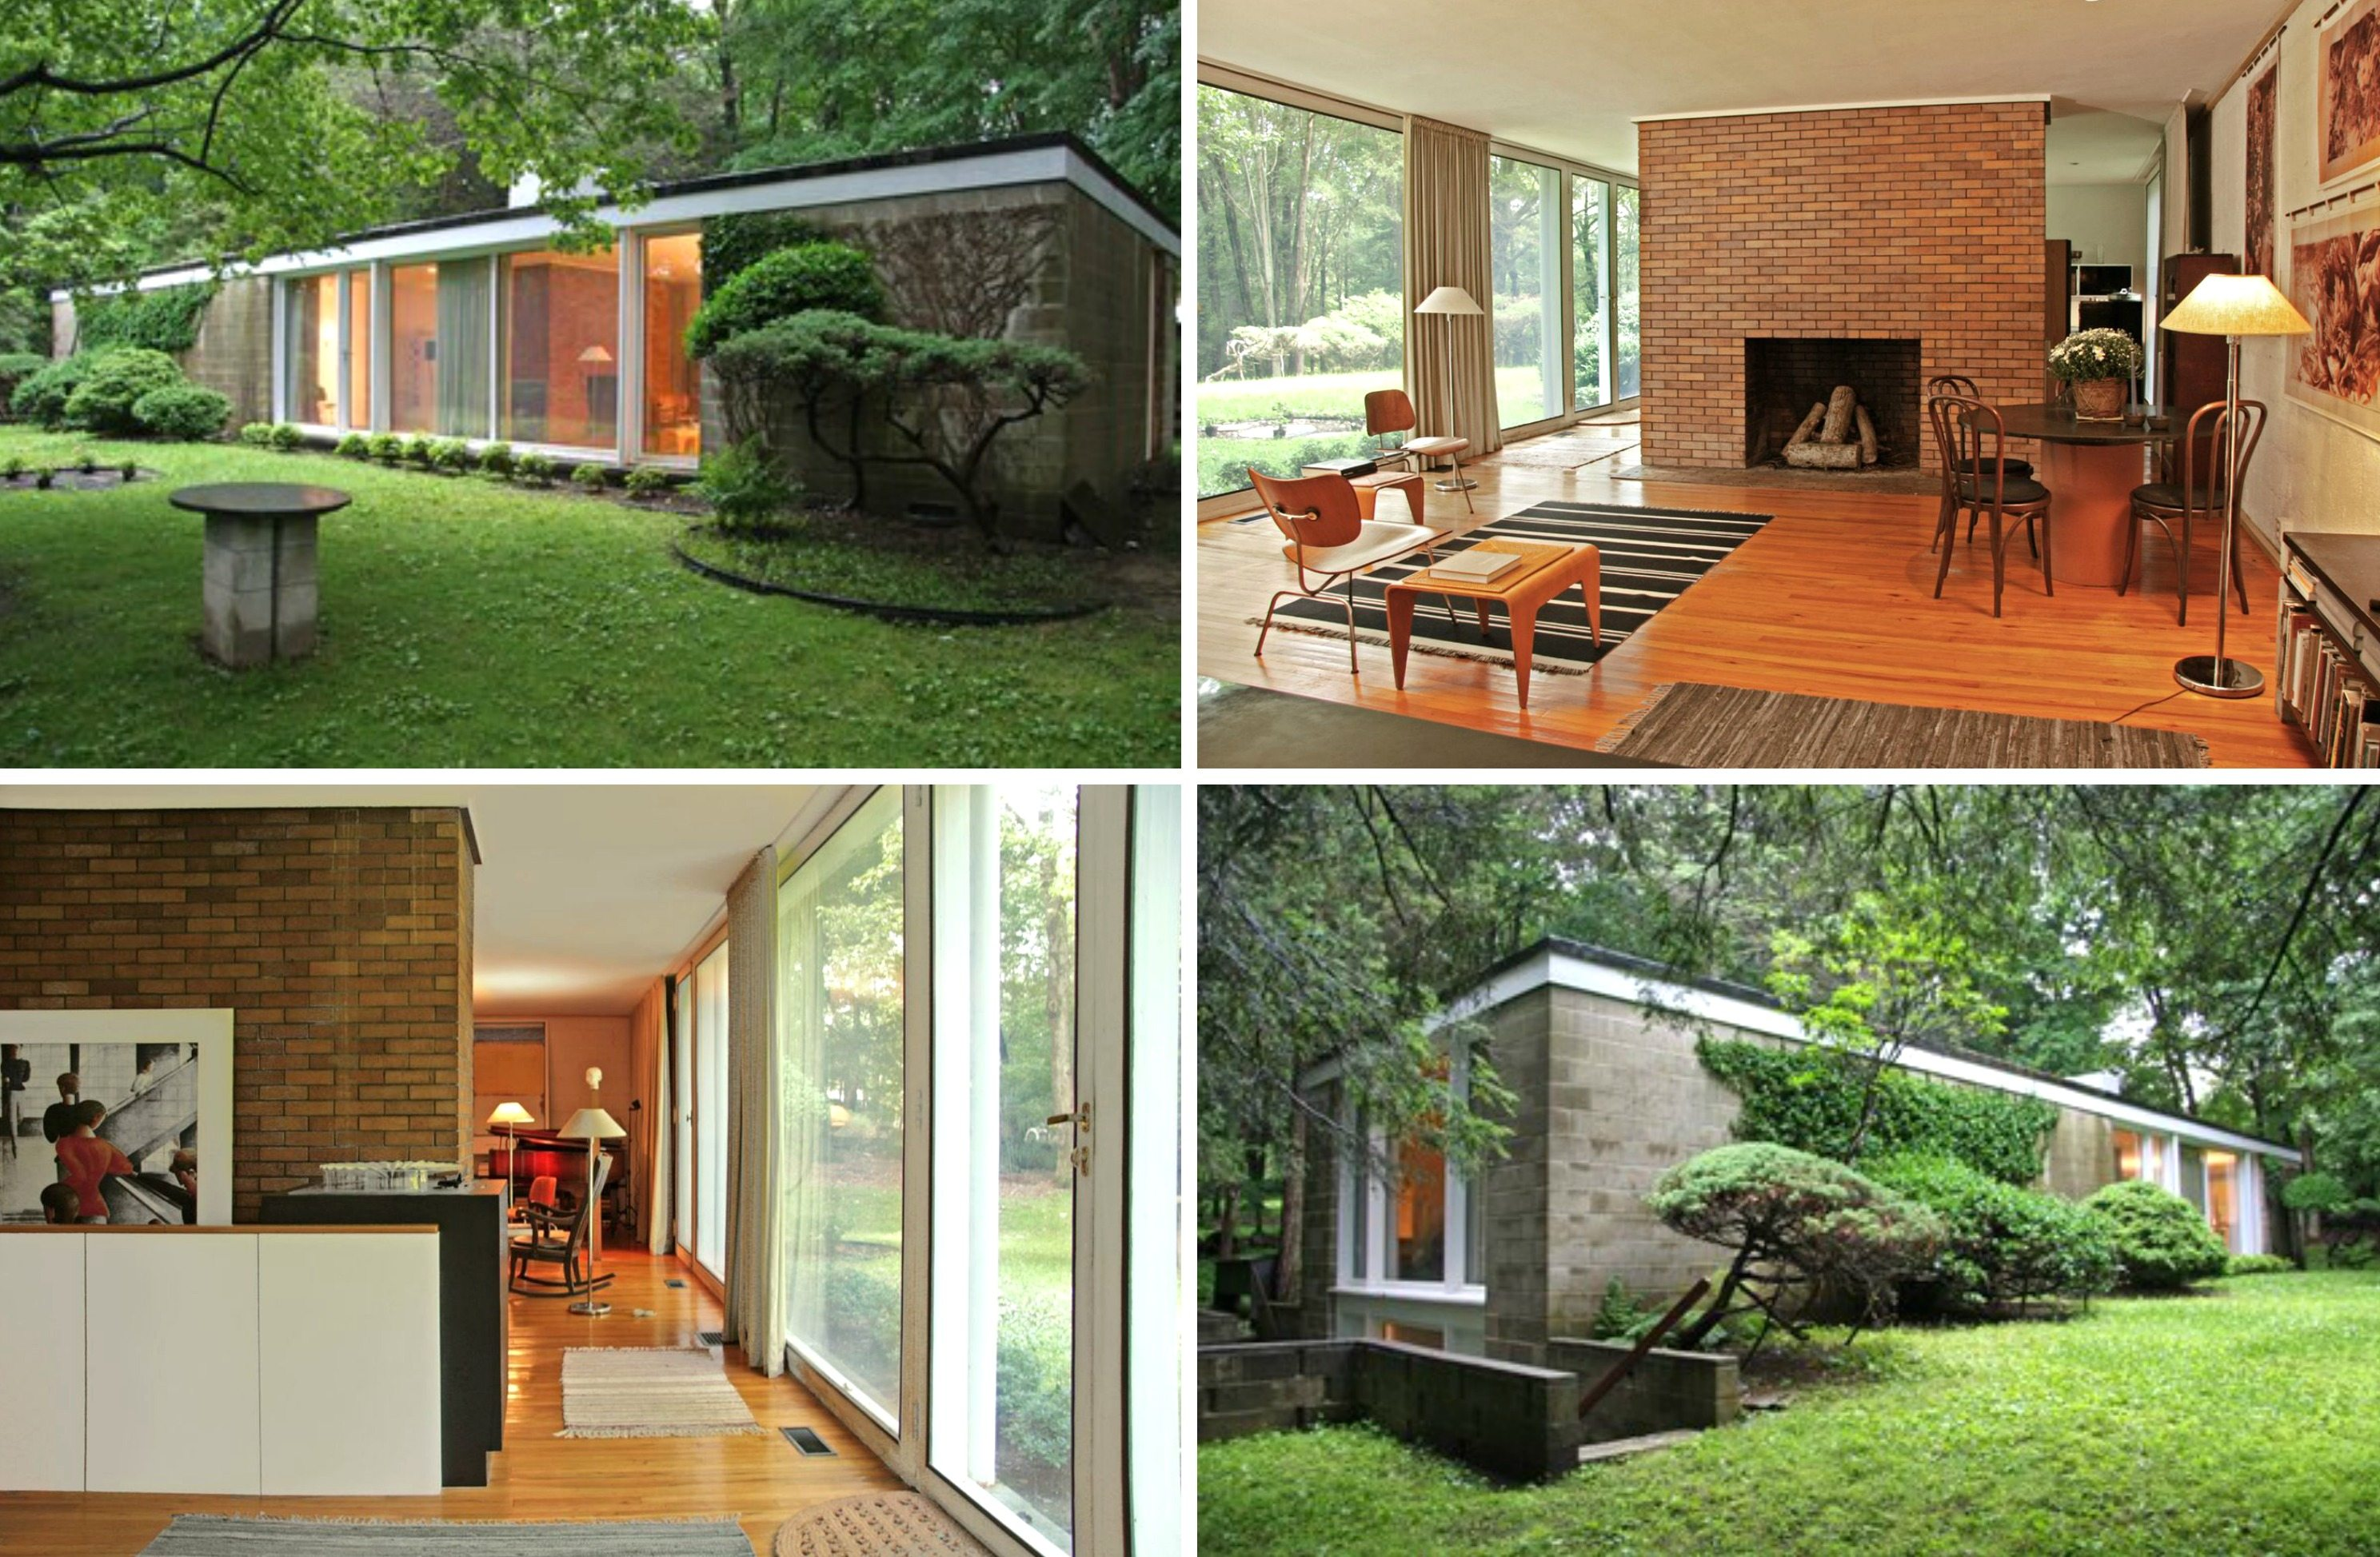 posted on wed april 19 2017 by devin gannon in cool listings historic homes starchitecture upstate - Home Designed